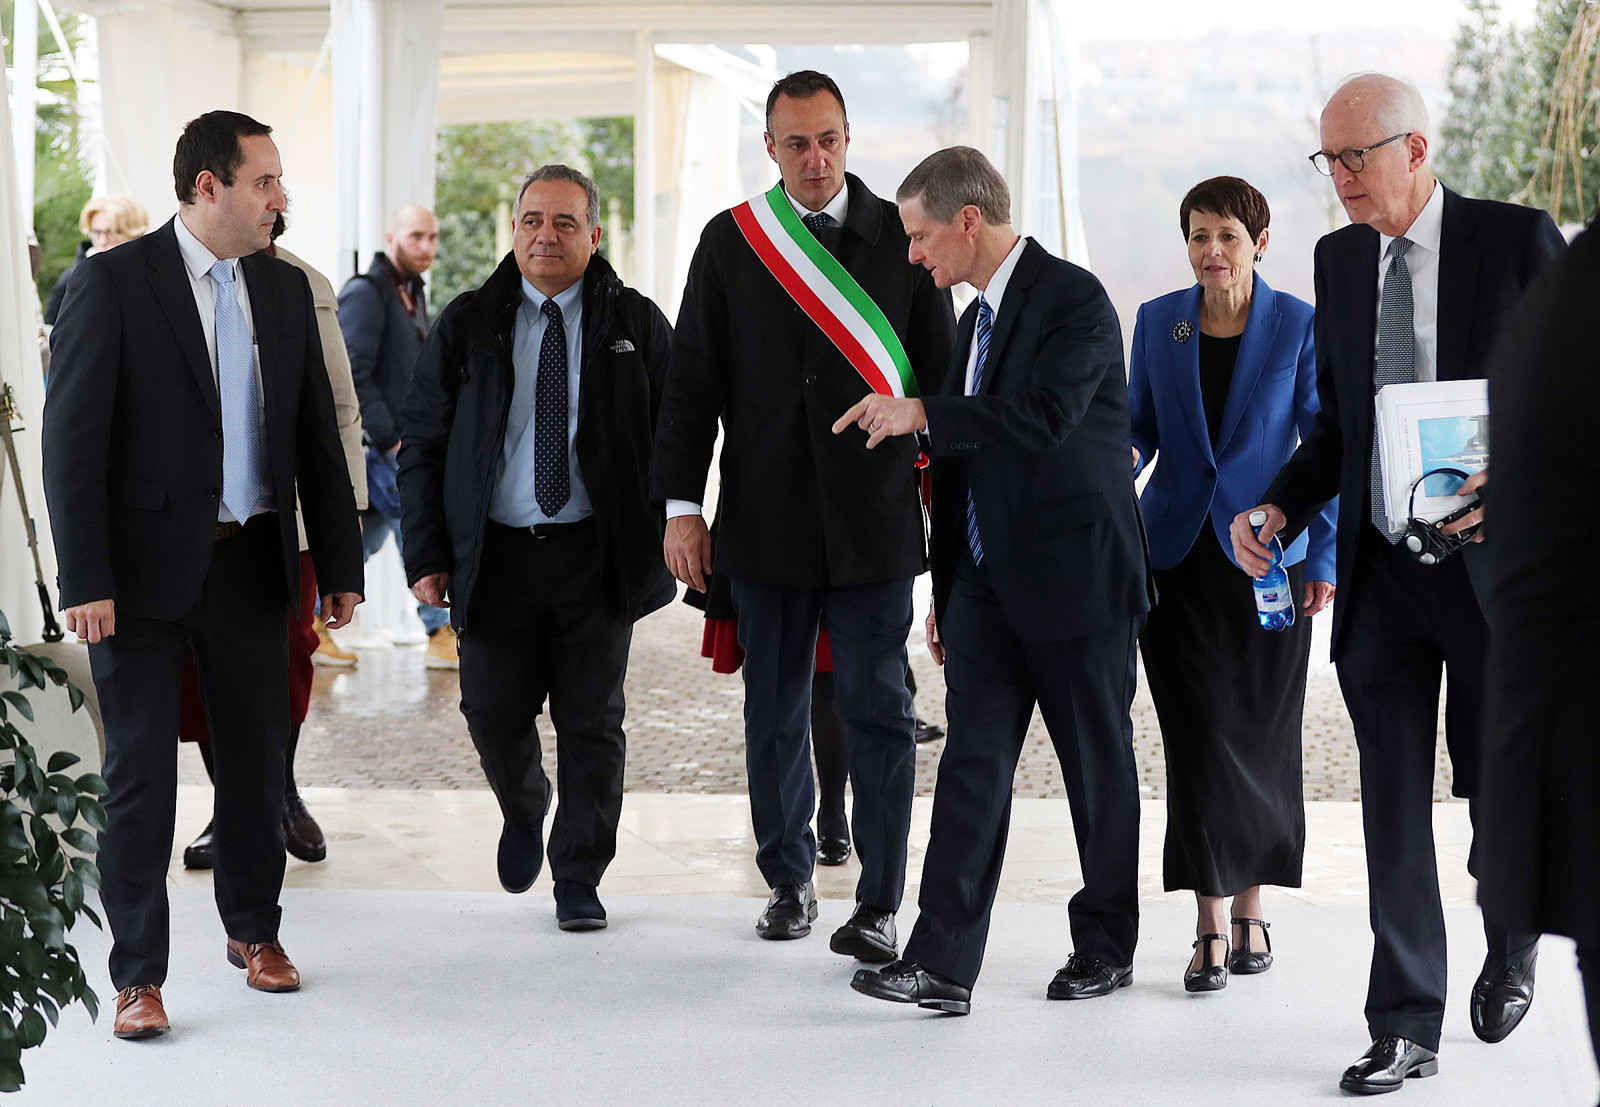 Elder David A. Bednar of the Quorum of the Twelve Apostles leads a tour during the Rome Italy Temple open house on Monday, Jan. 14, 2019. Third from left is President President Marcello De Vito, president of the Rome City Council. Second from left is President Giovanni Caudo, president of the Third Municipality of Rome.